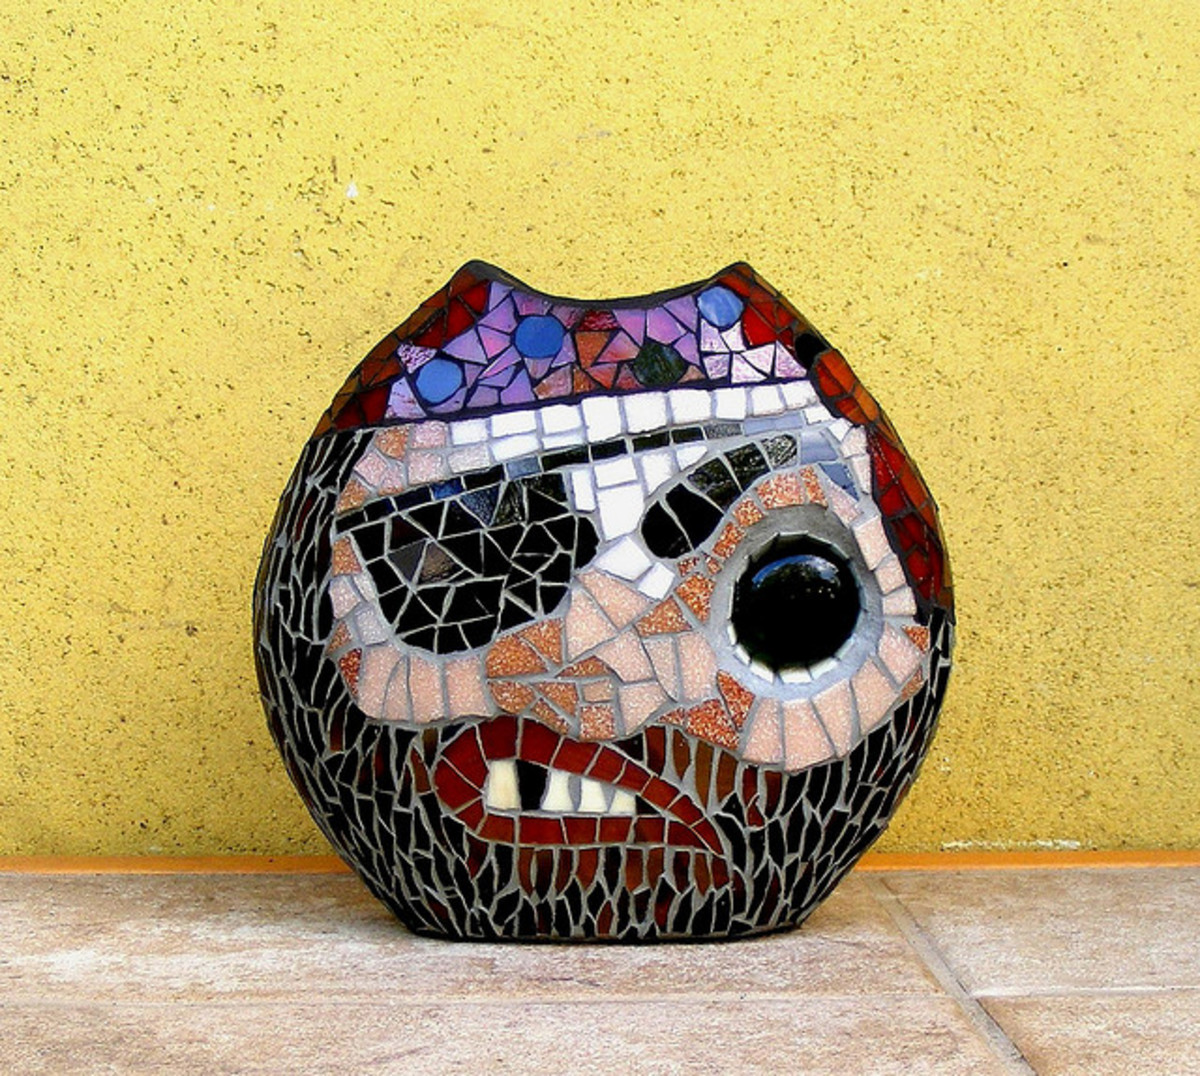 Learn the art of mosaic making and you can make vases as cool as this one!